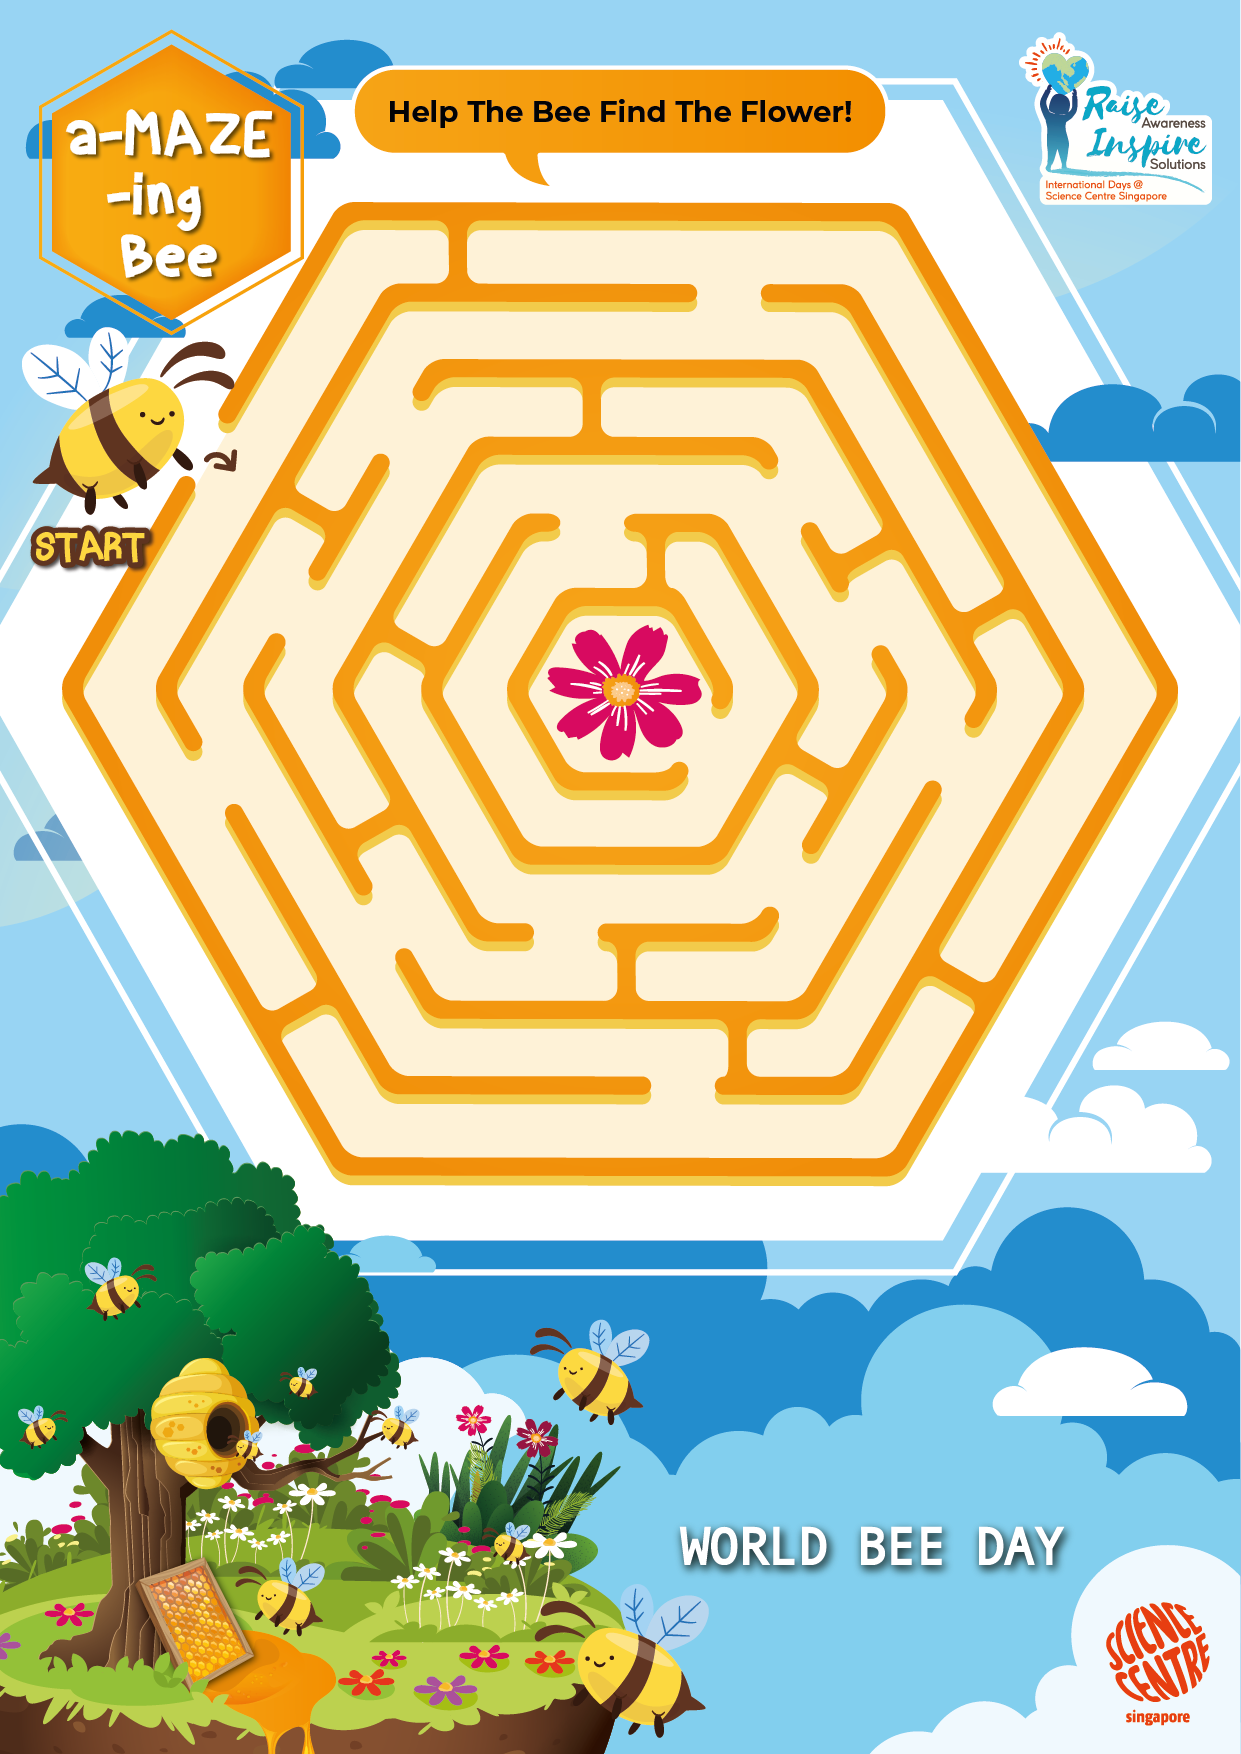 World Bee Day 2020 a-MAZE-ing Bee